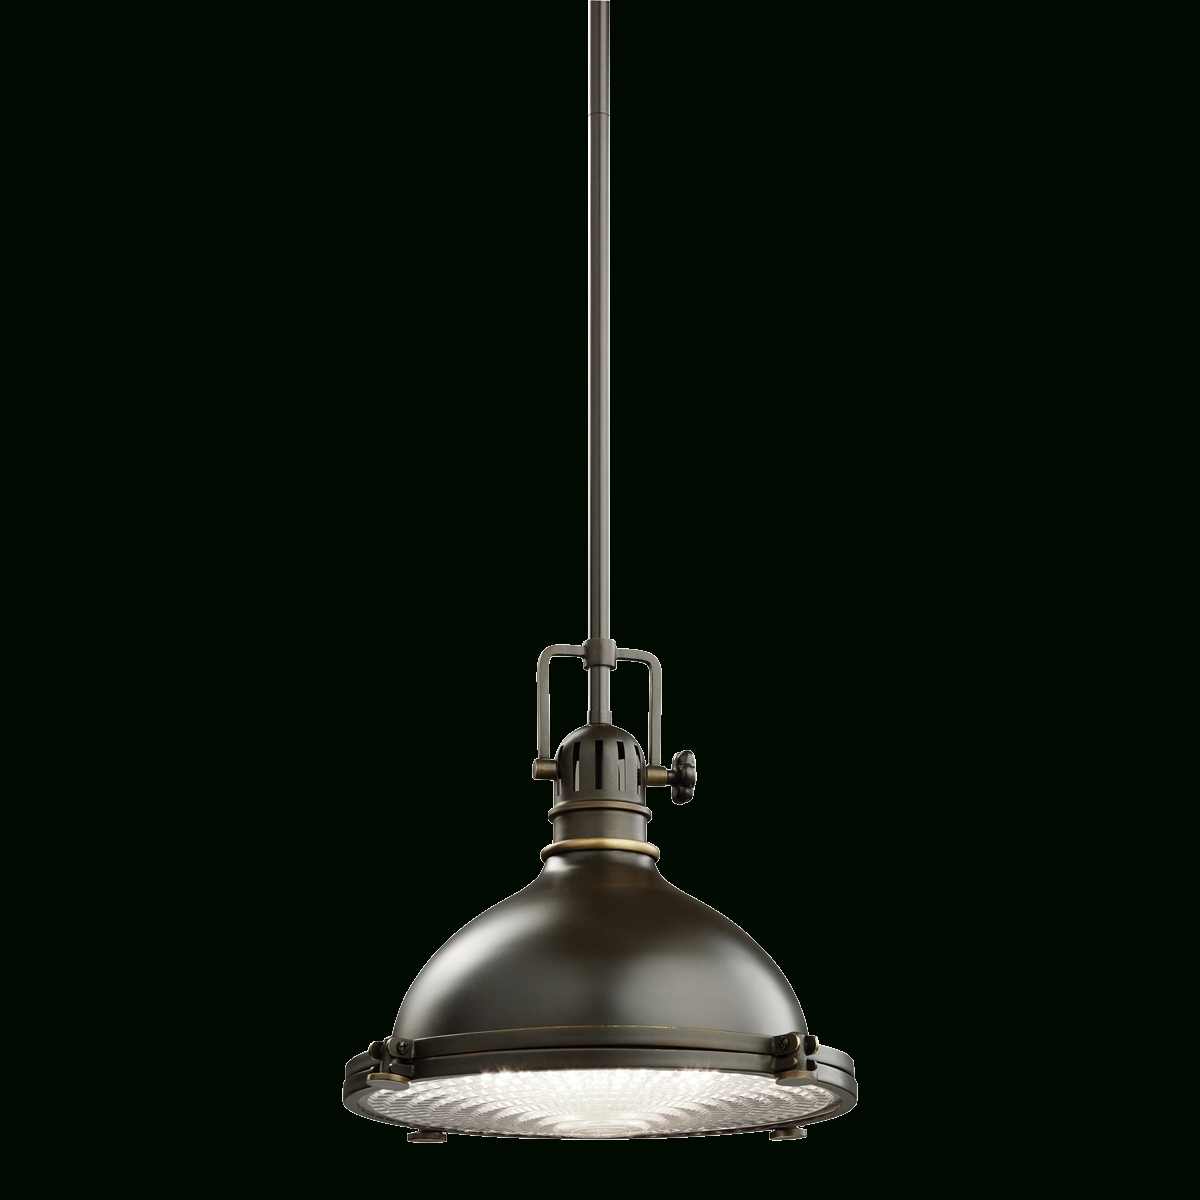 Kichler 1 Light Industrial Pendant (2665Pn)| Polished Nickel Lighting Throughout Industrial Pendant Lights (View 9 of 15)